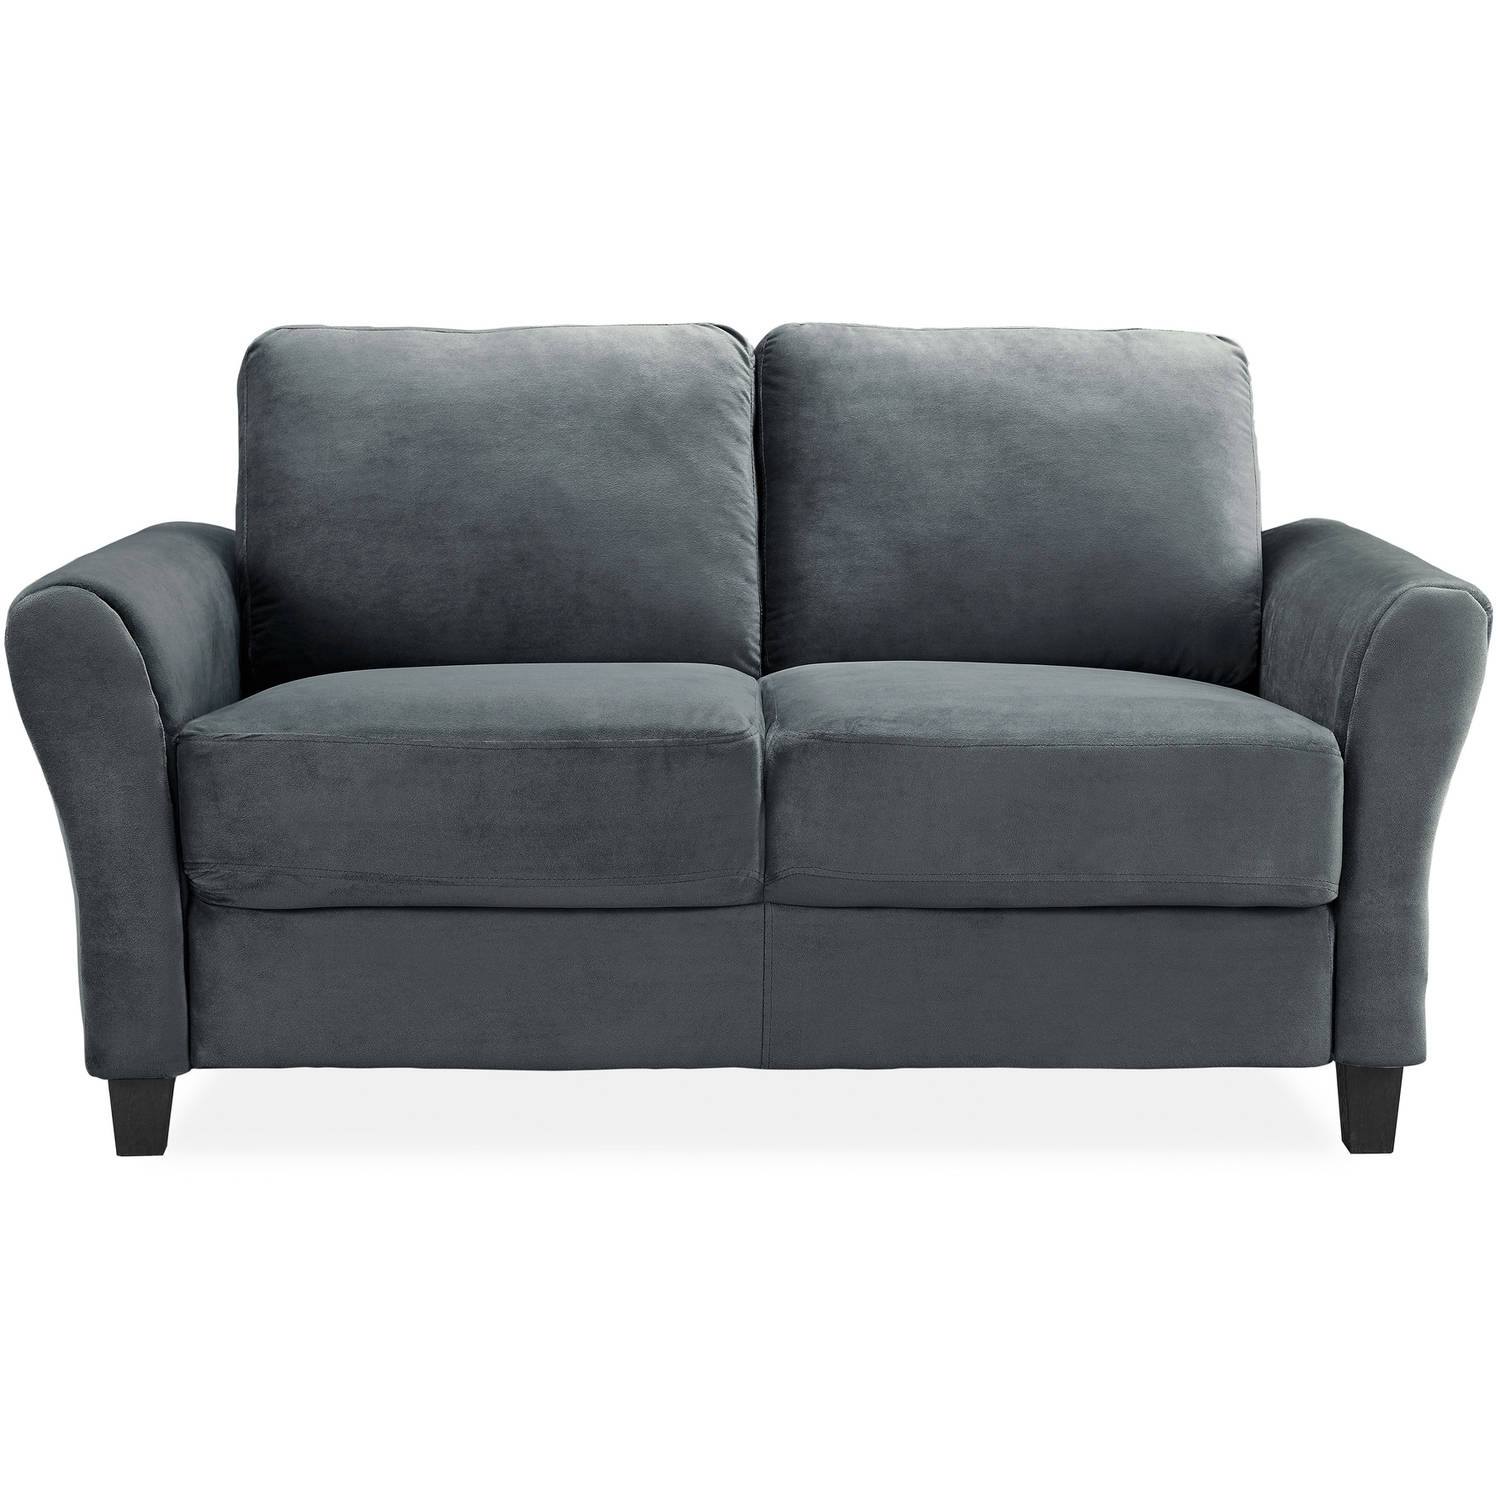 LifeStyle Solutions Alexa Rolled-Arm Loveseat, Upholstered fabric in Dark Grey